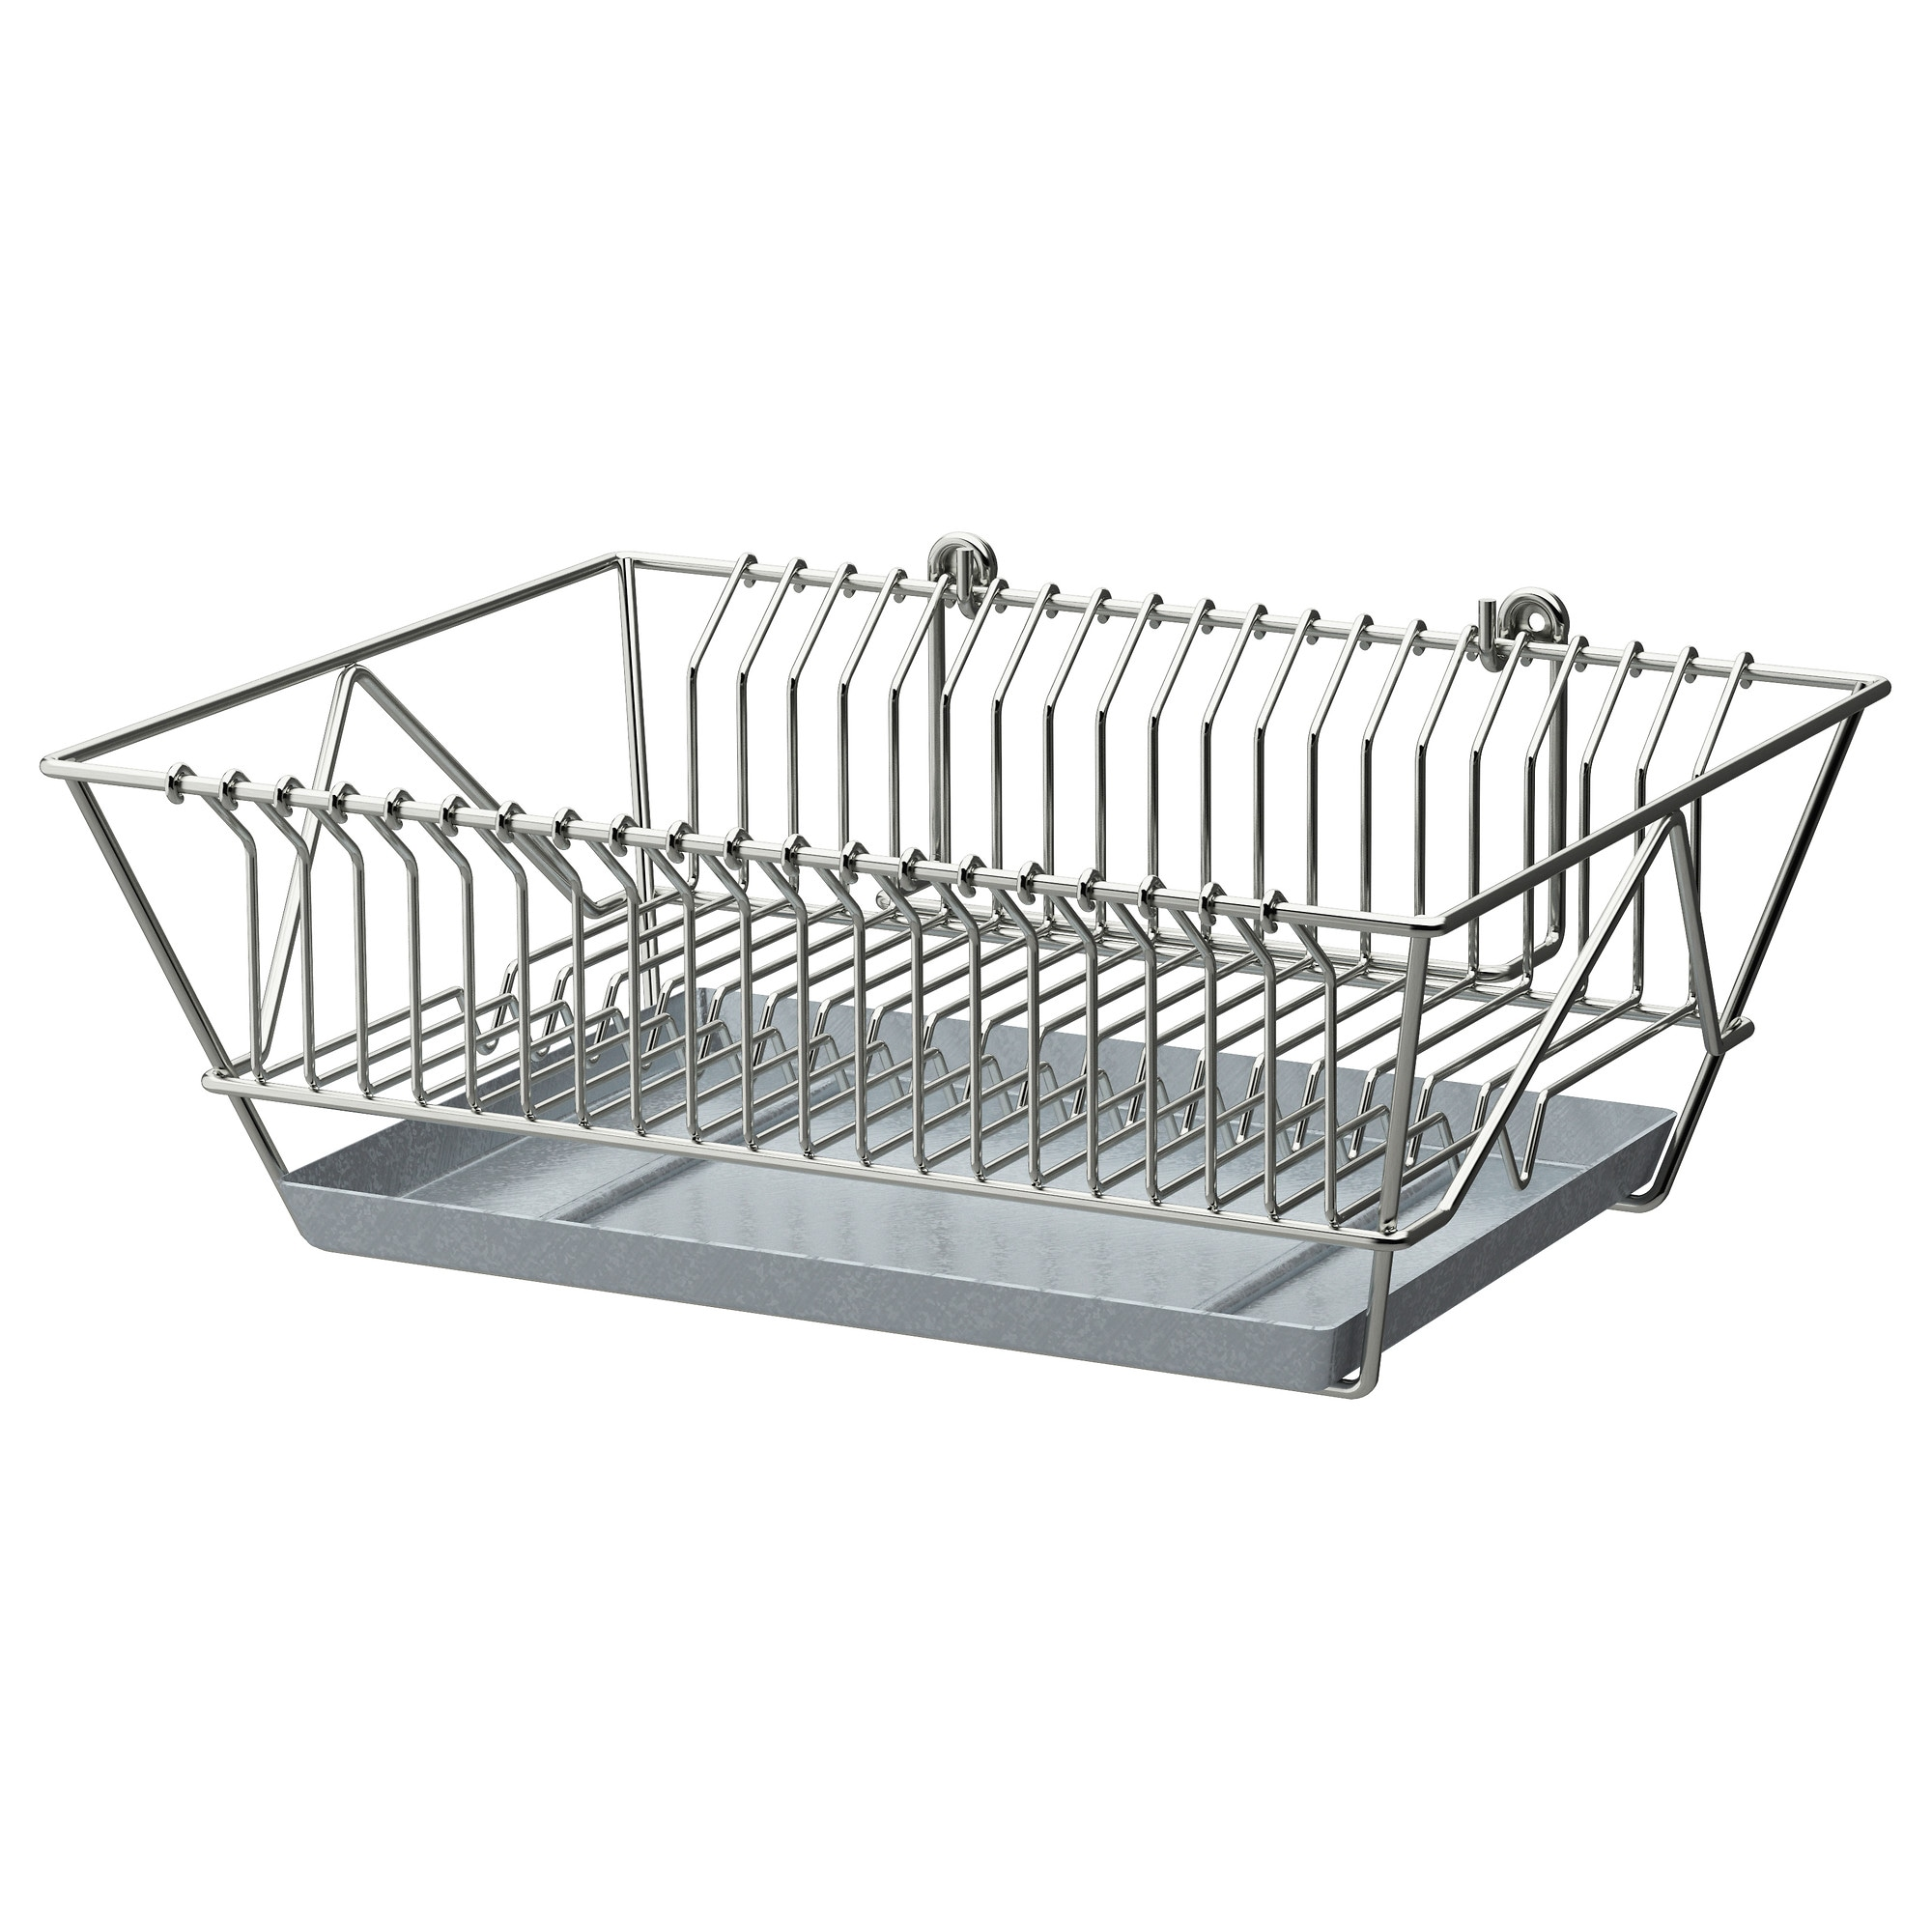 Kitchen Dish Rack Dishwashing Accessories Ikea